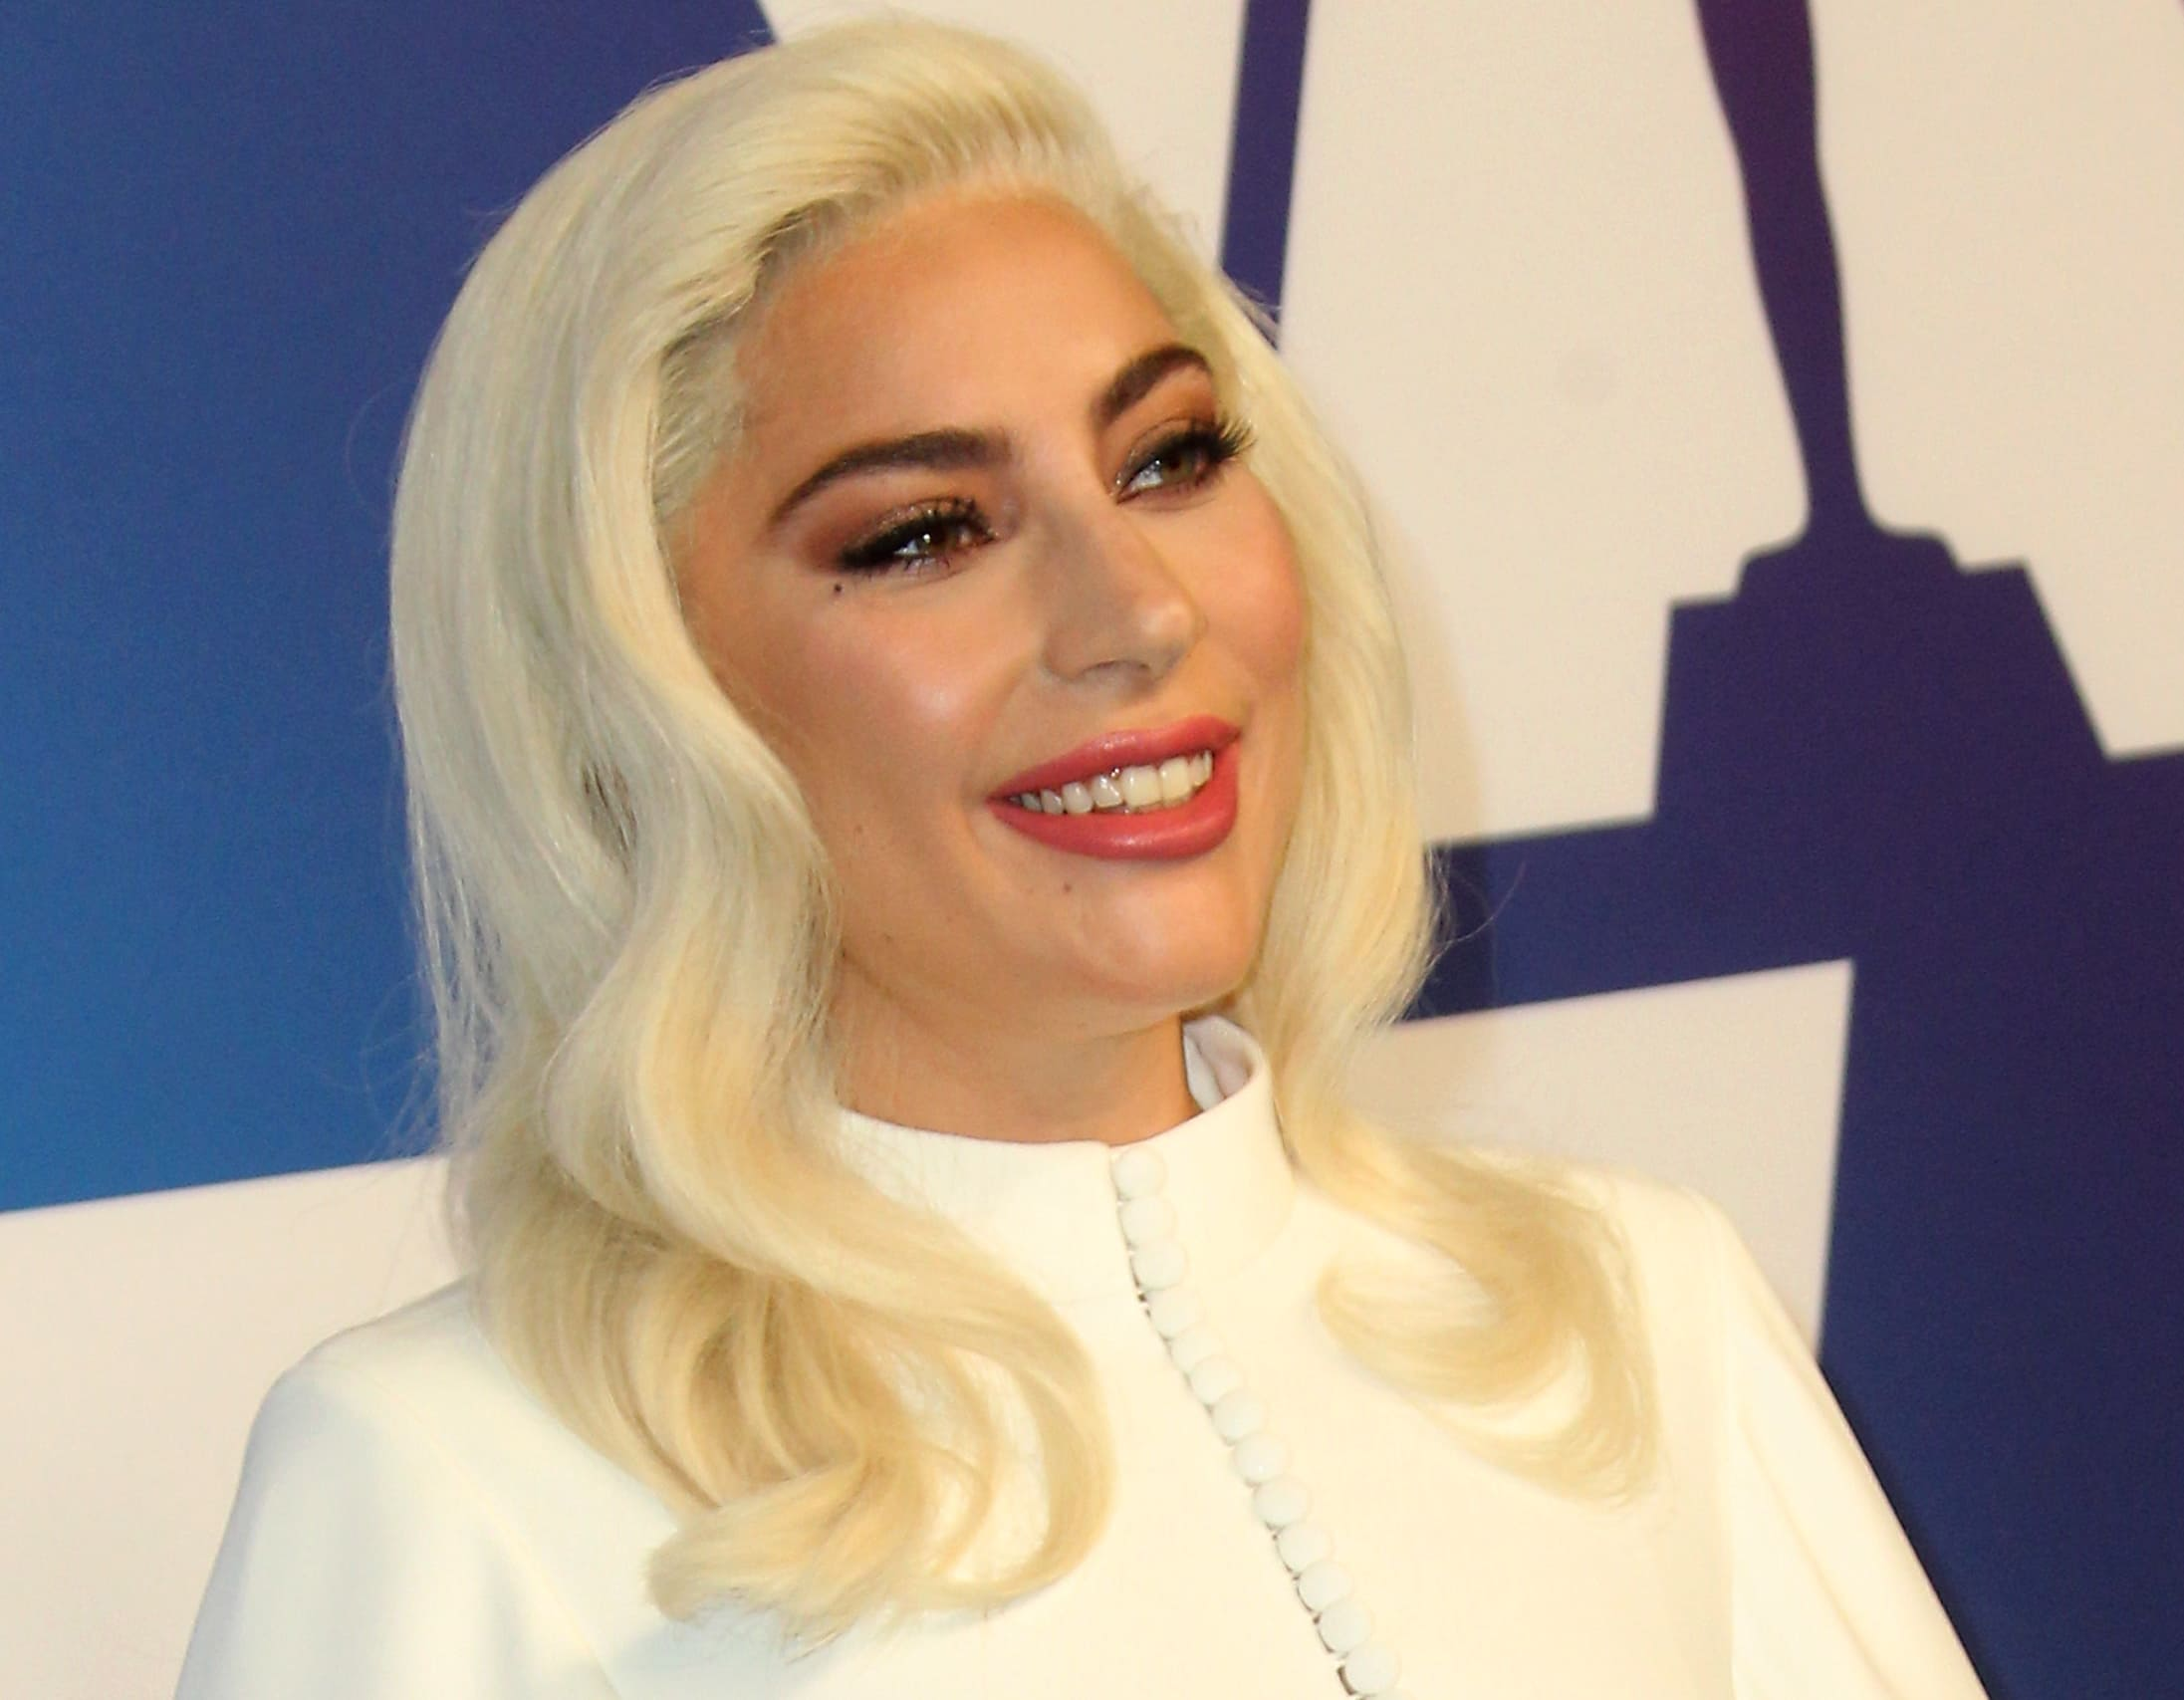 Lady Gaga with too much makeup at the 2019 Oscar Nominees Luncheon